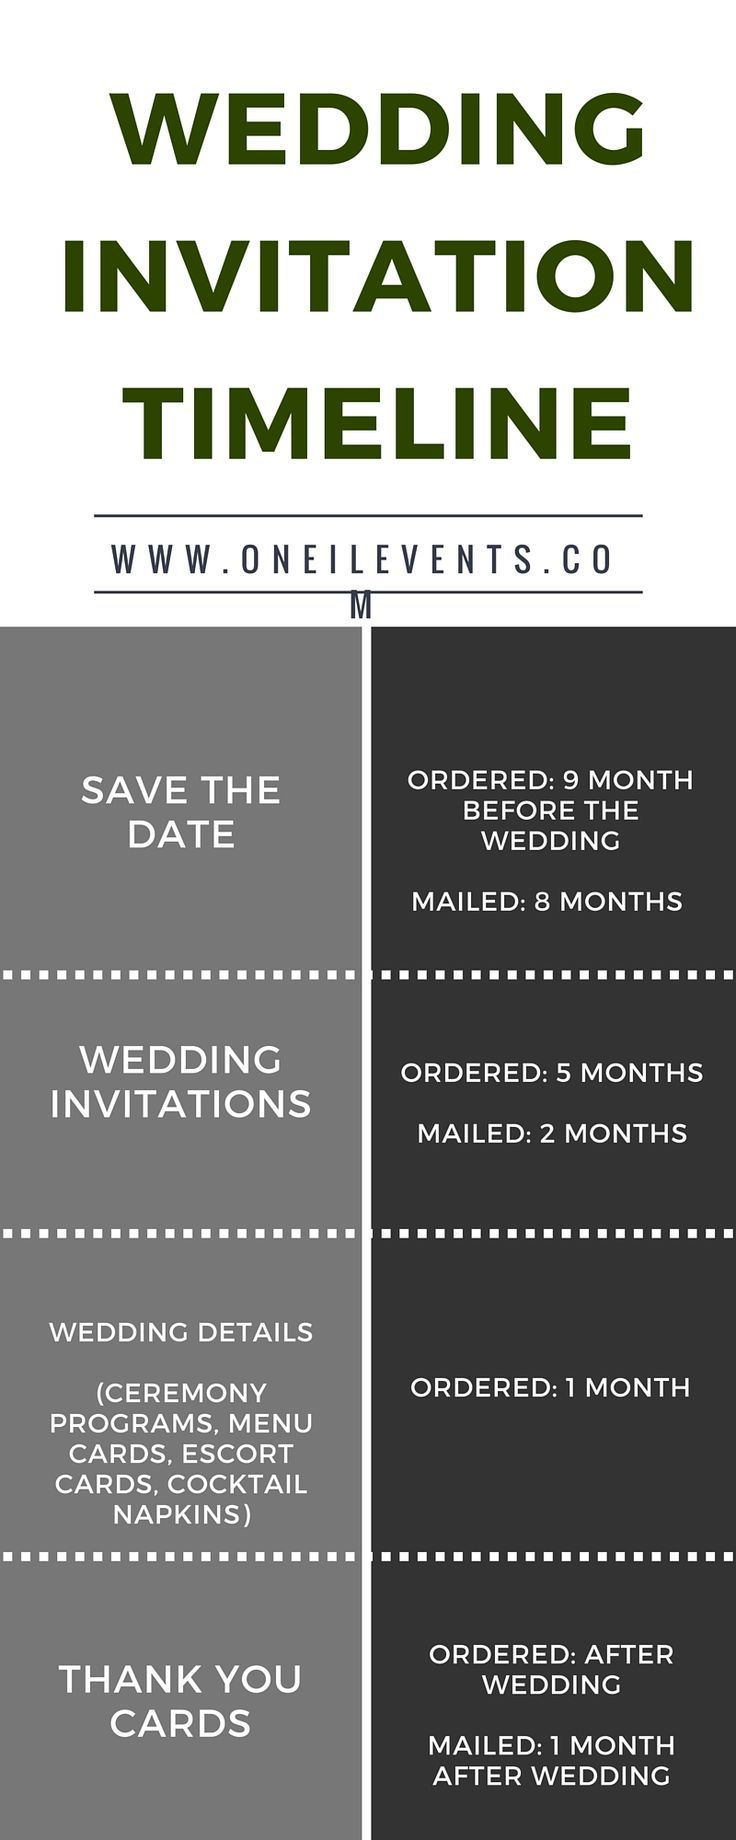 118 best wedding invitations images on pinterest wedding ideas tape this wedding invitation timeline infographic to your board to make sure you do not miss any significant printing and mailing dates monicamarmolfo Image collections